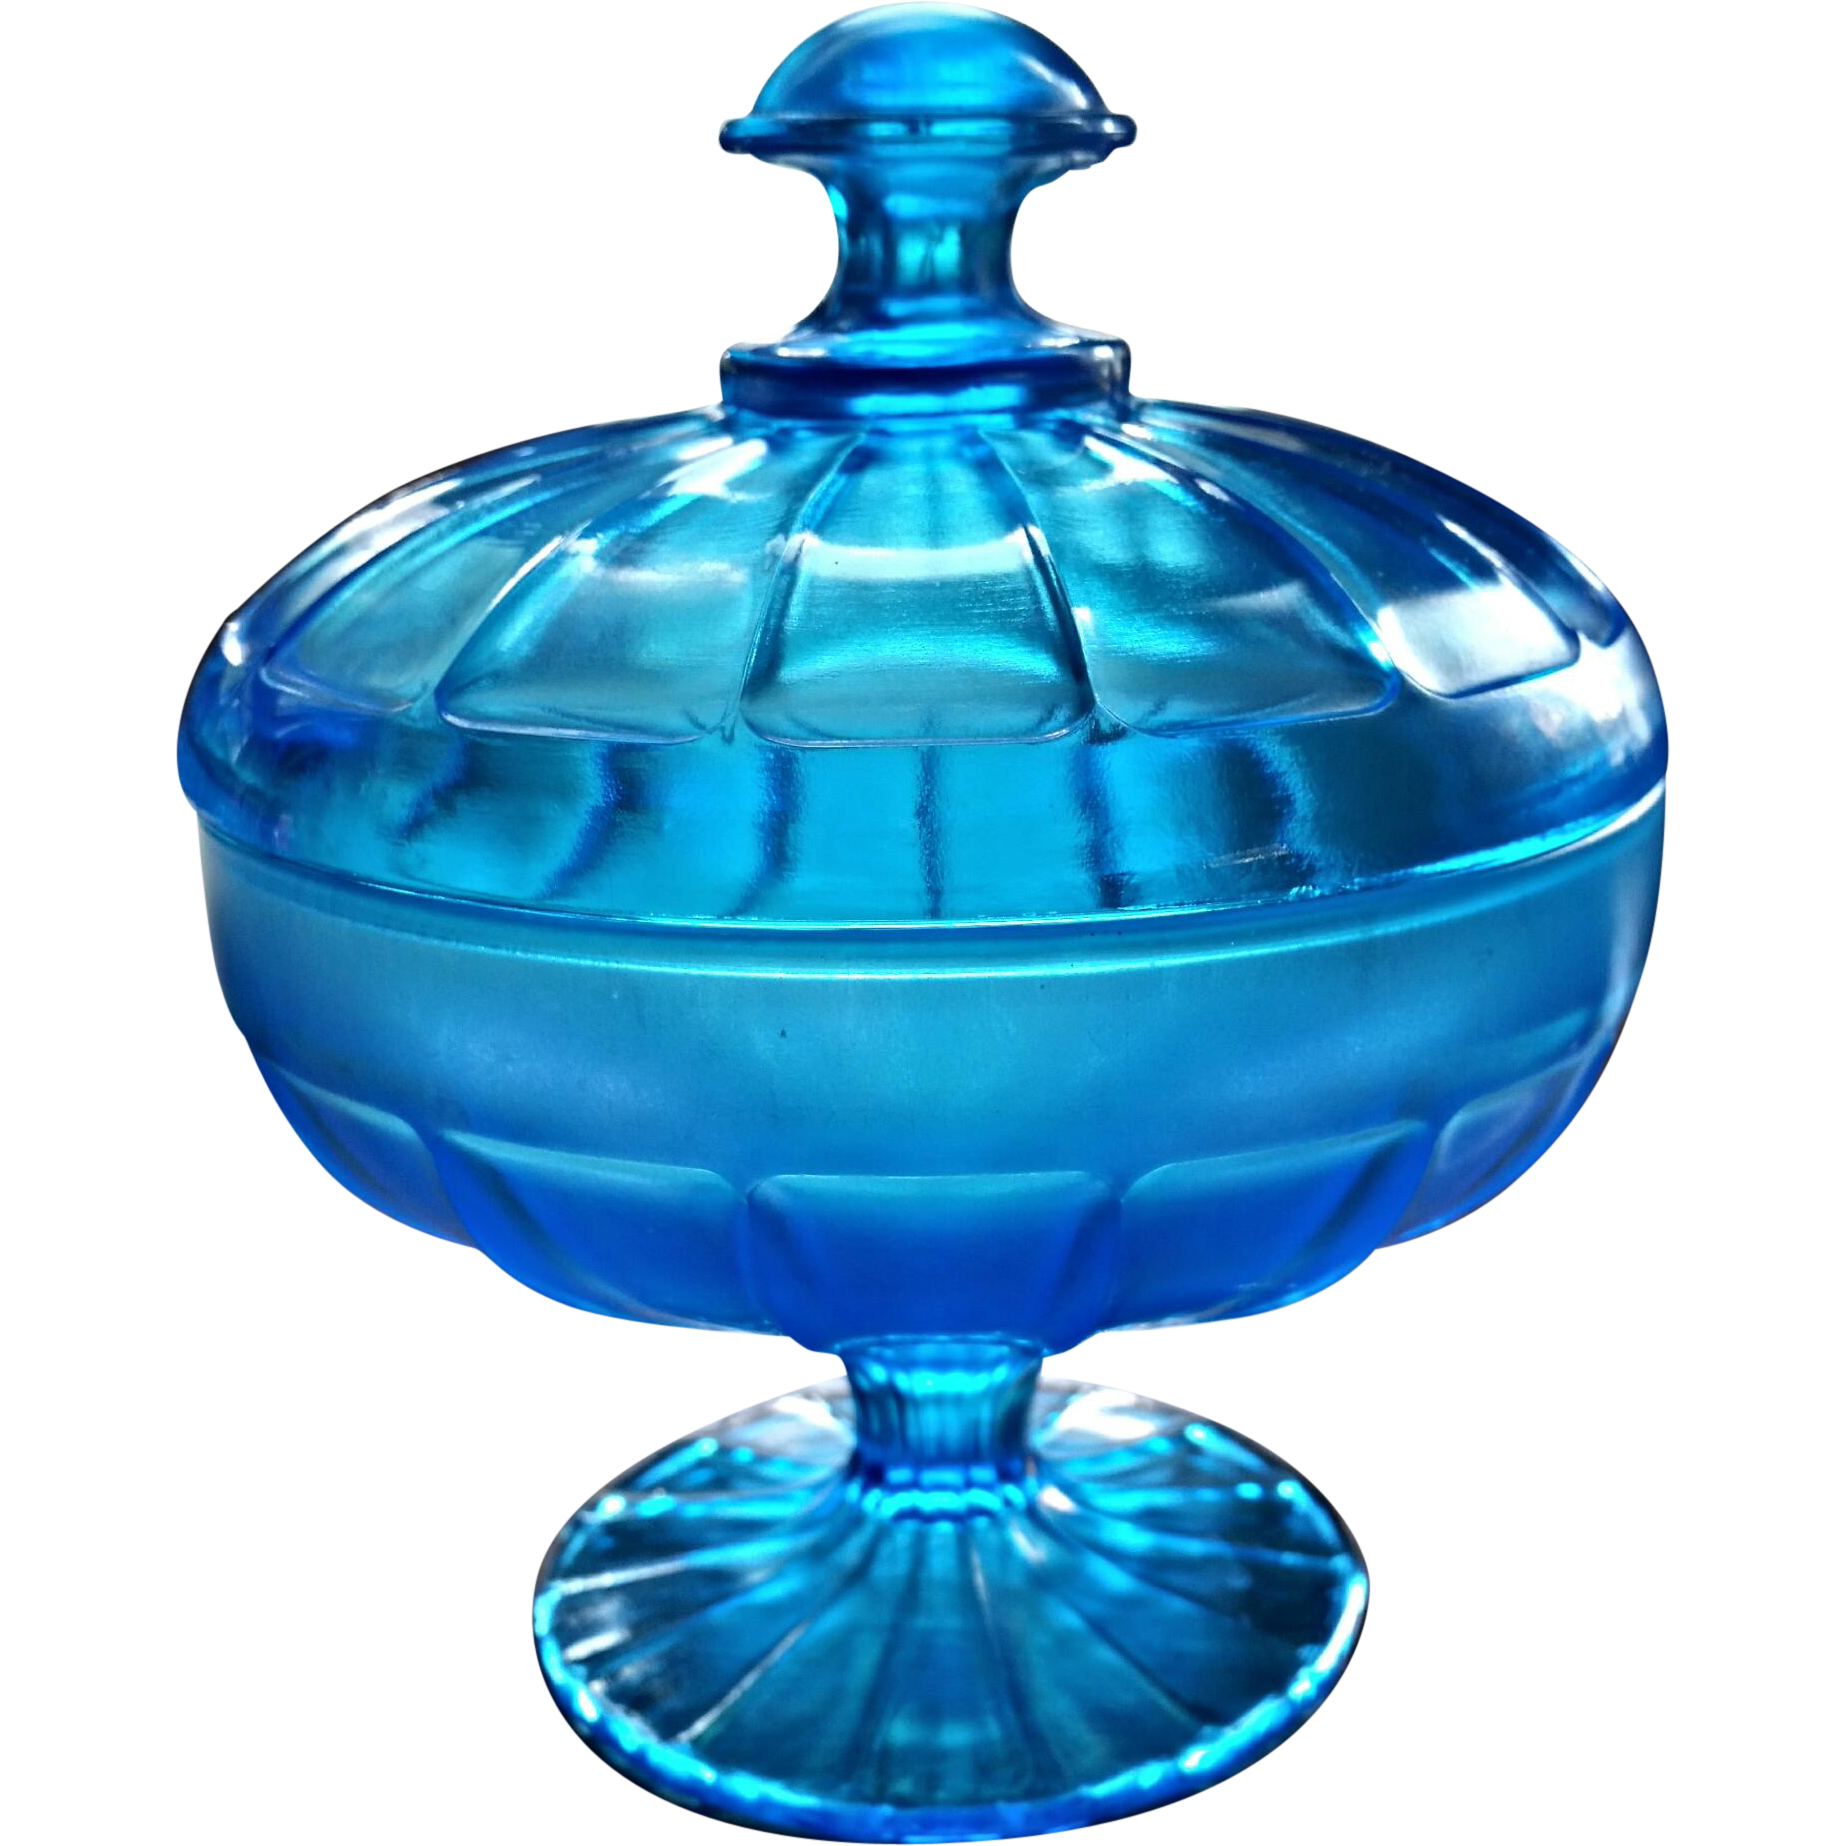 Celeste Blue Northwood stretch glass #643 line compote, bon-bon